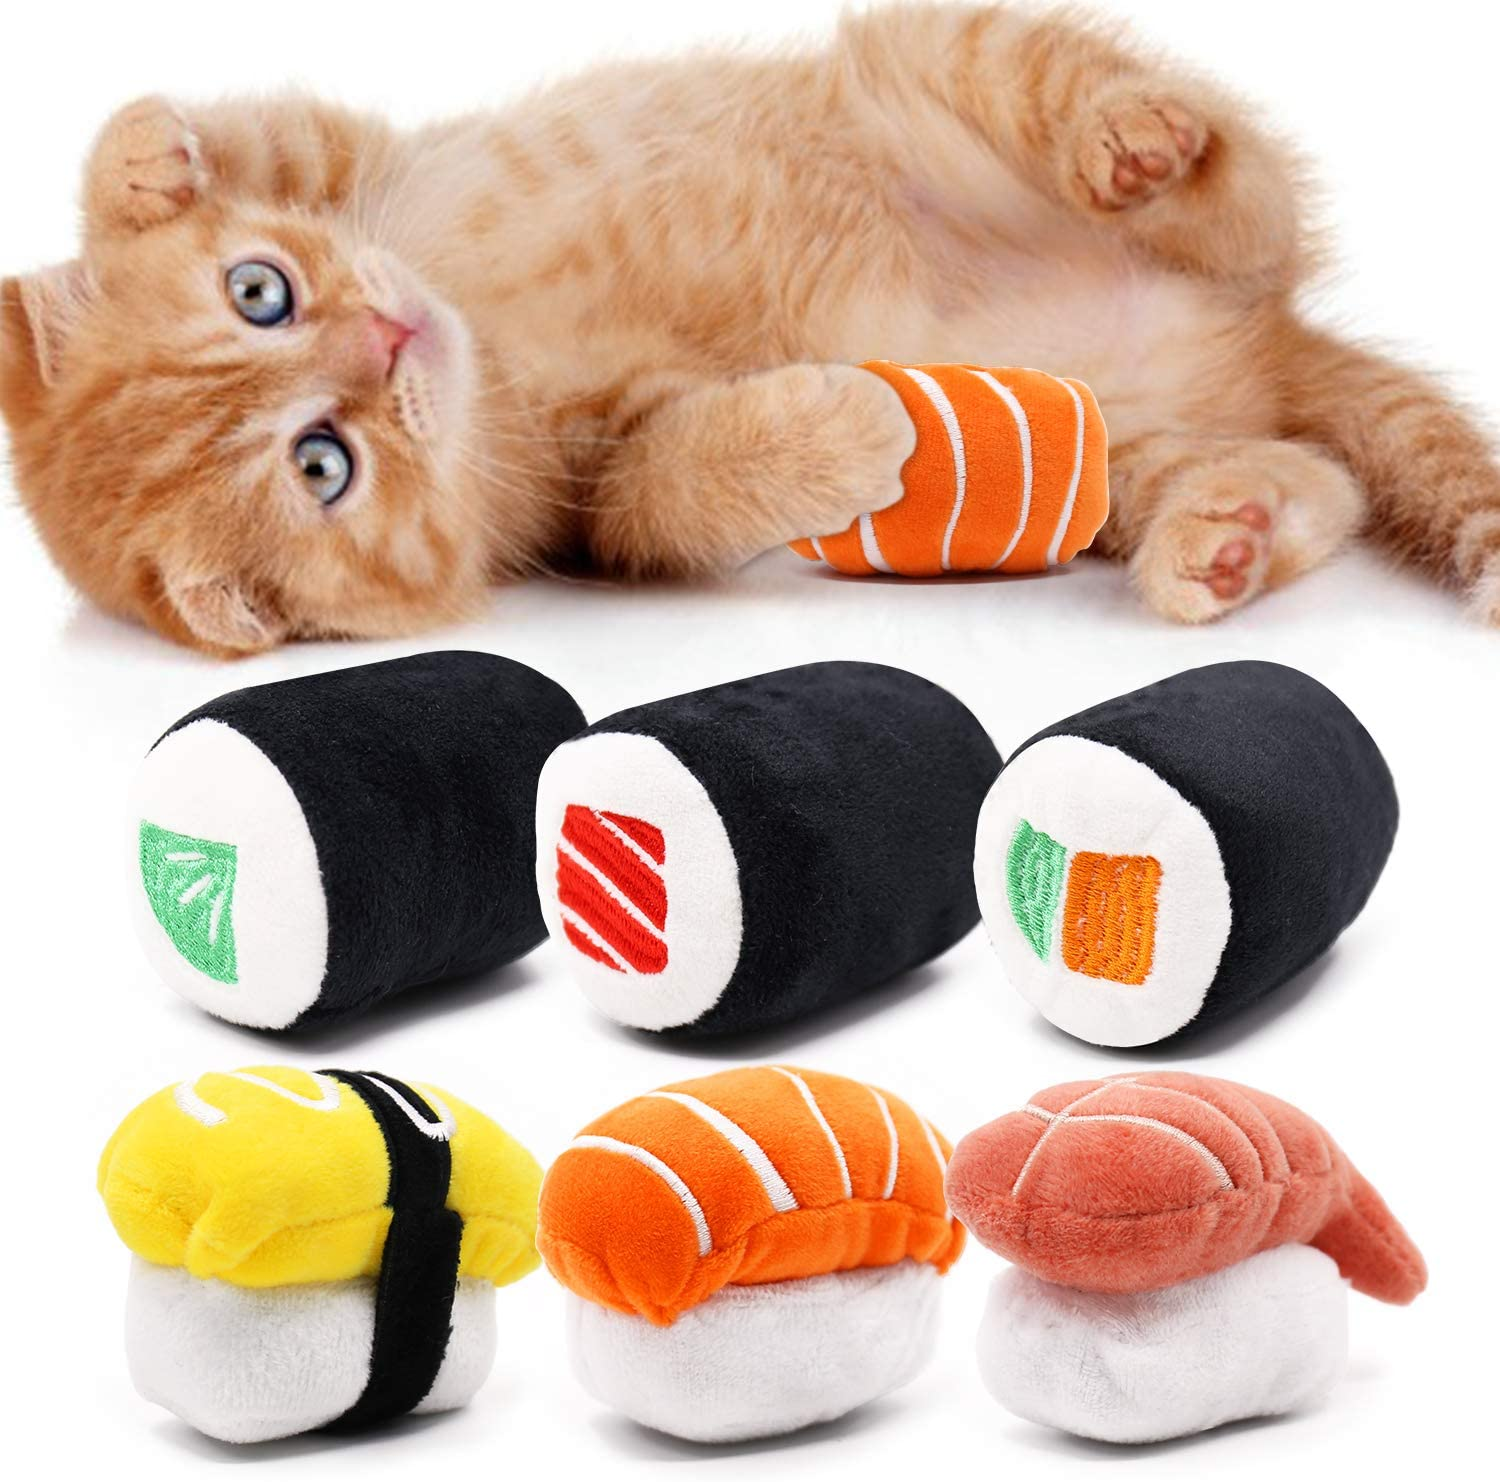 CiyvoLyeen 6 Pack Sushi Cat Toys with Catnip Sushi Roll Pillow Kitten Chew Bite Supplies Boredom Relief Fluffy Kitty Teeth Cleaning Chewing Cat Lovers Interactive Plush Gift